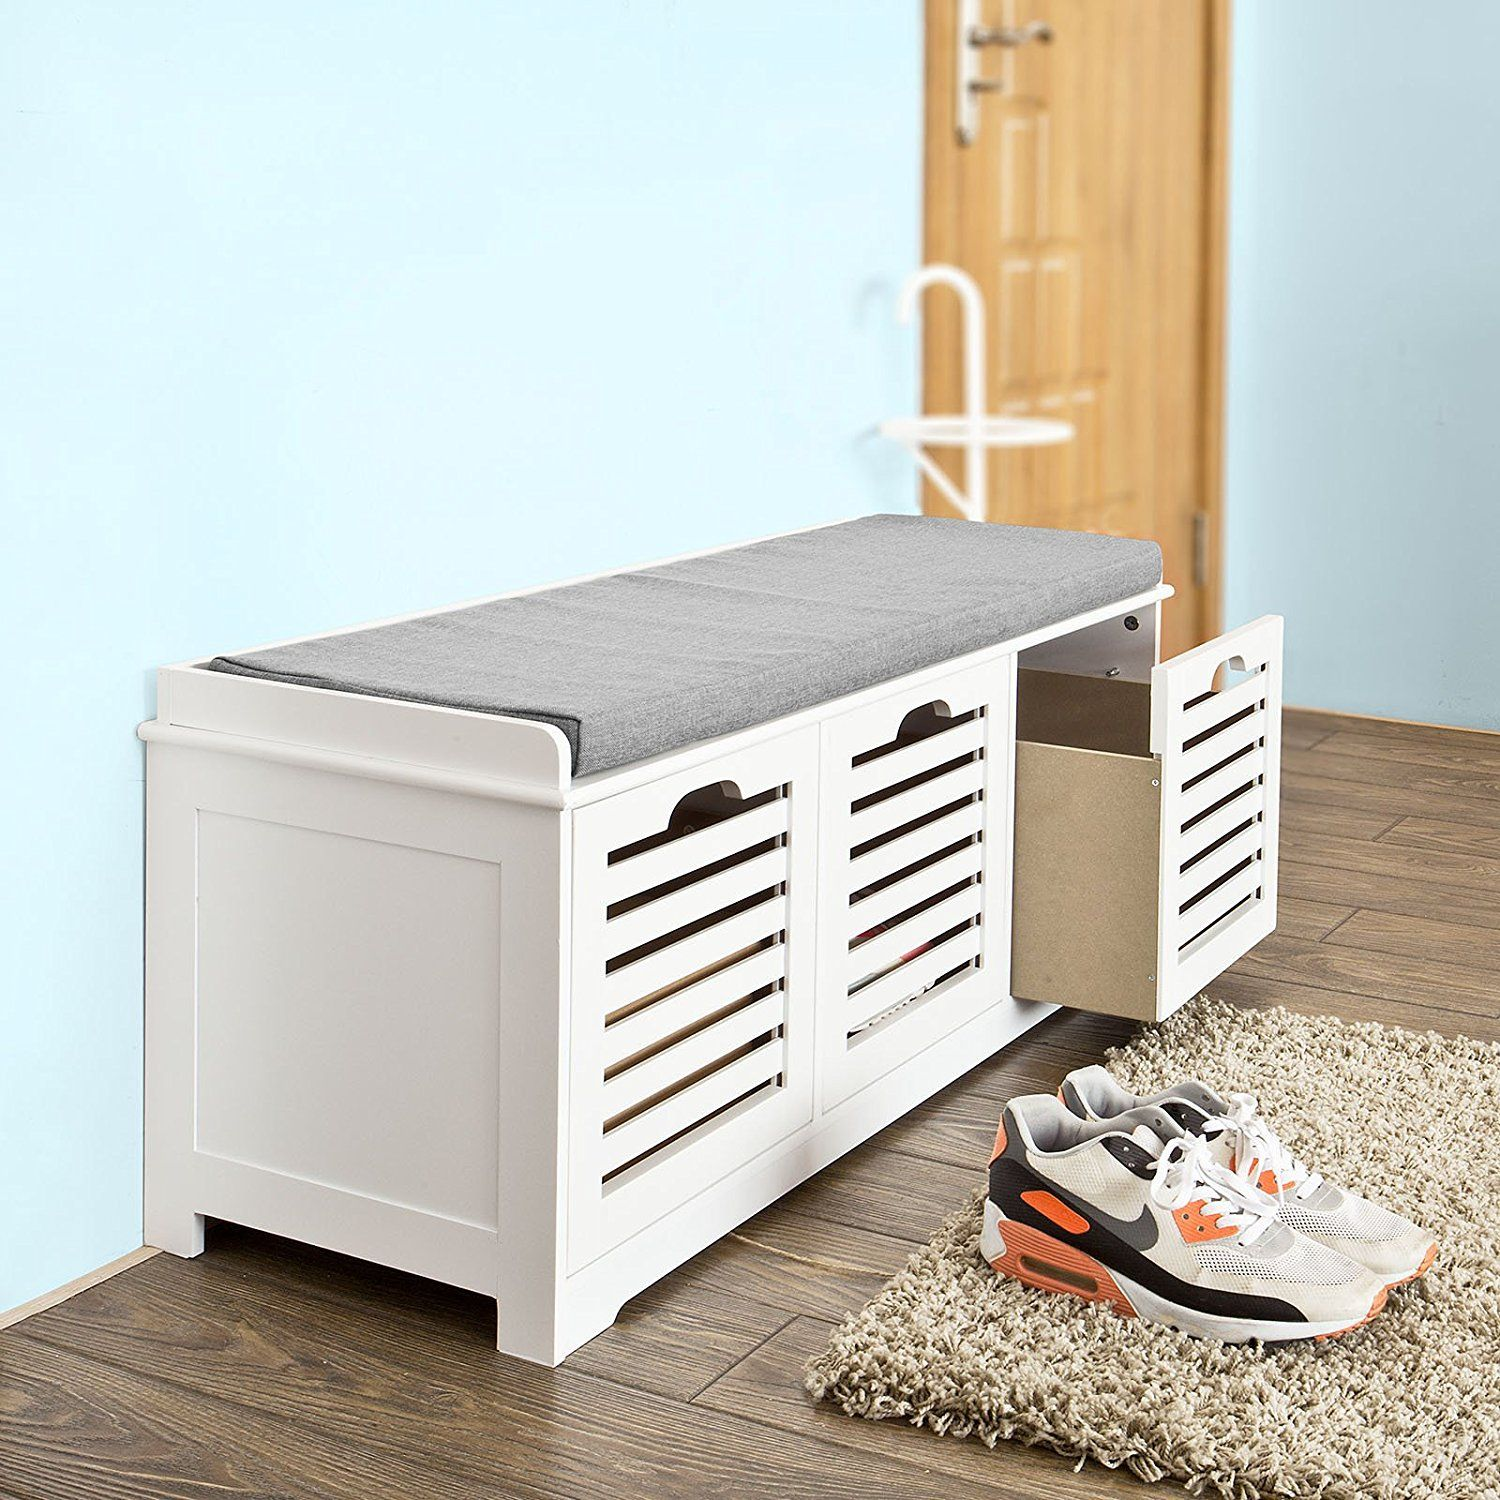 Sobuy Storage Bench With 3 Drawers Seat Cushion Shoe Cabinet